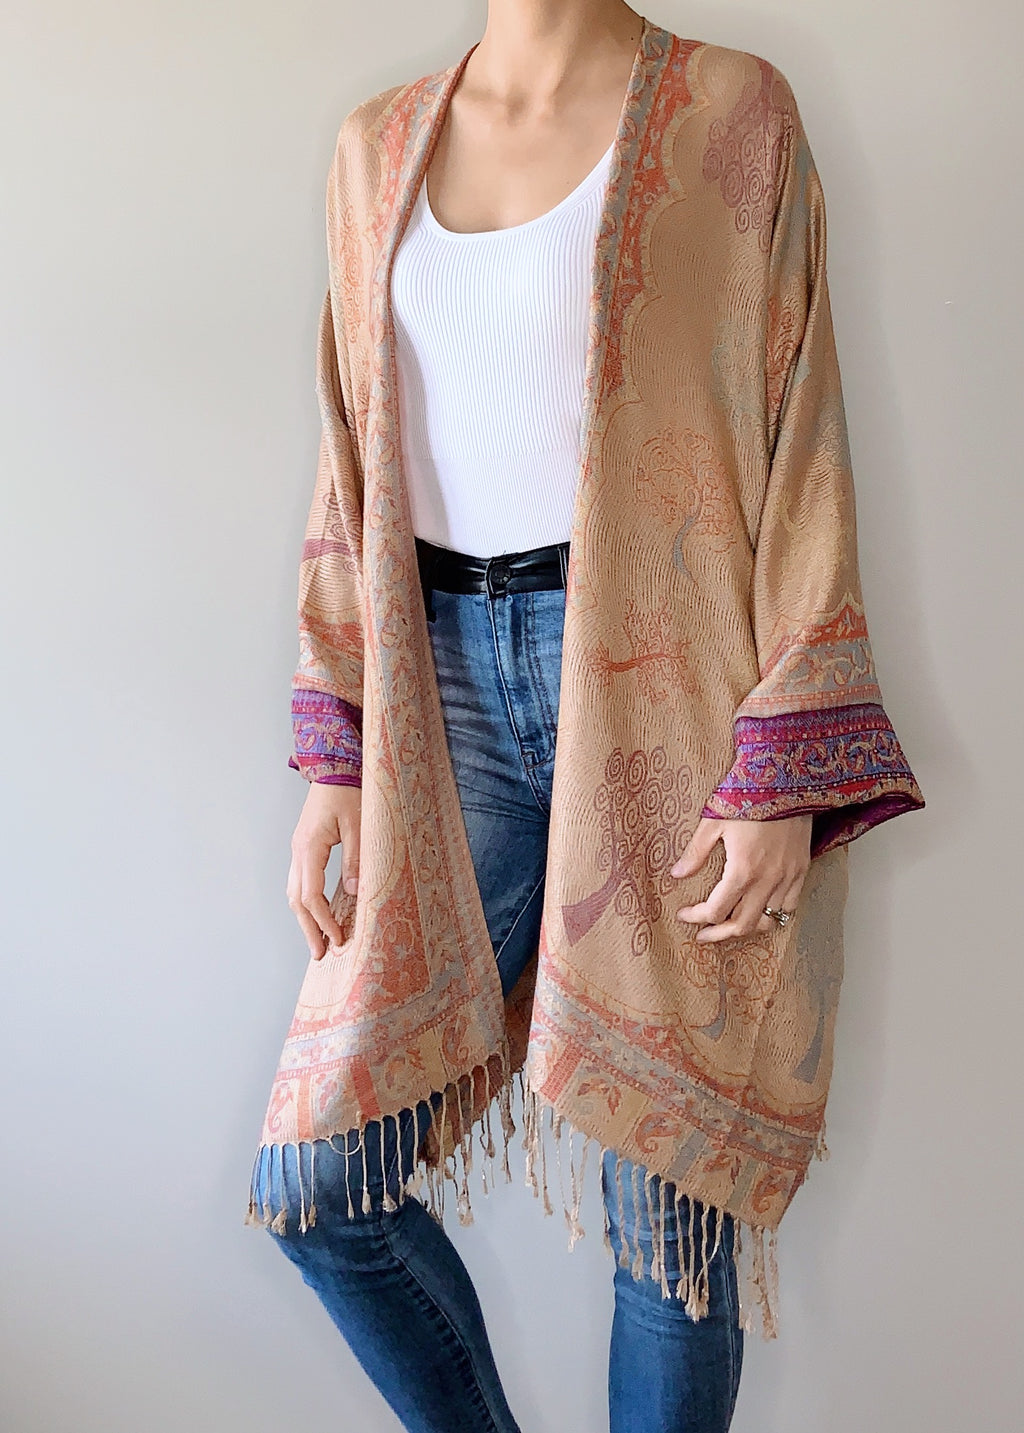 Baobab Boho Jacket with Cuffs